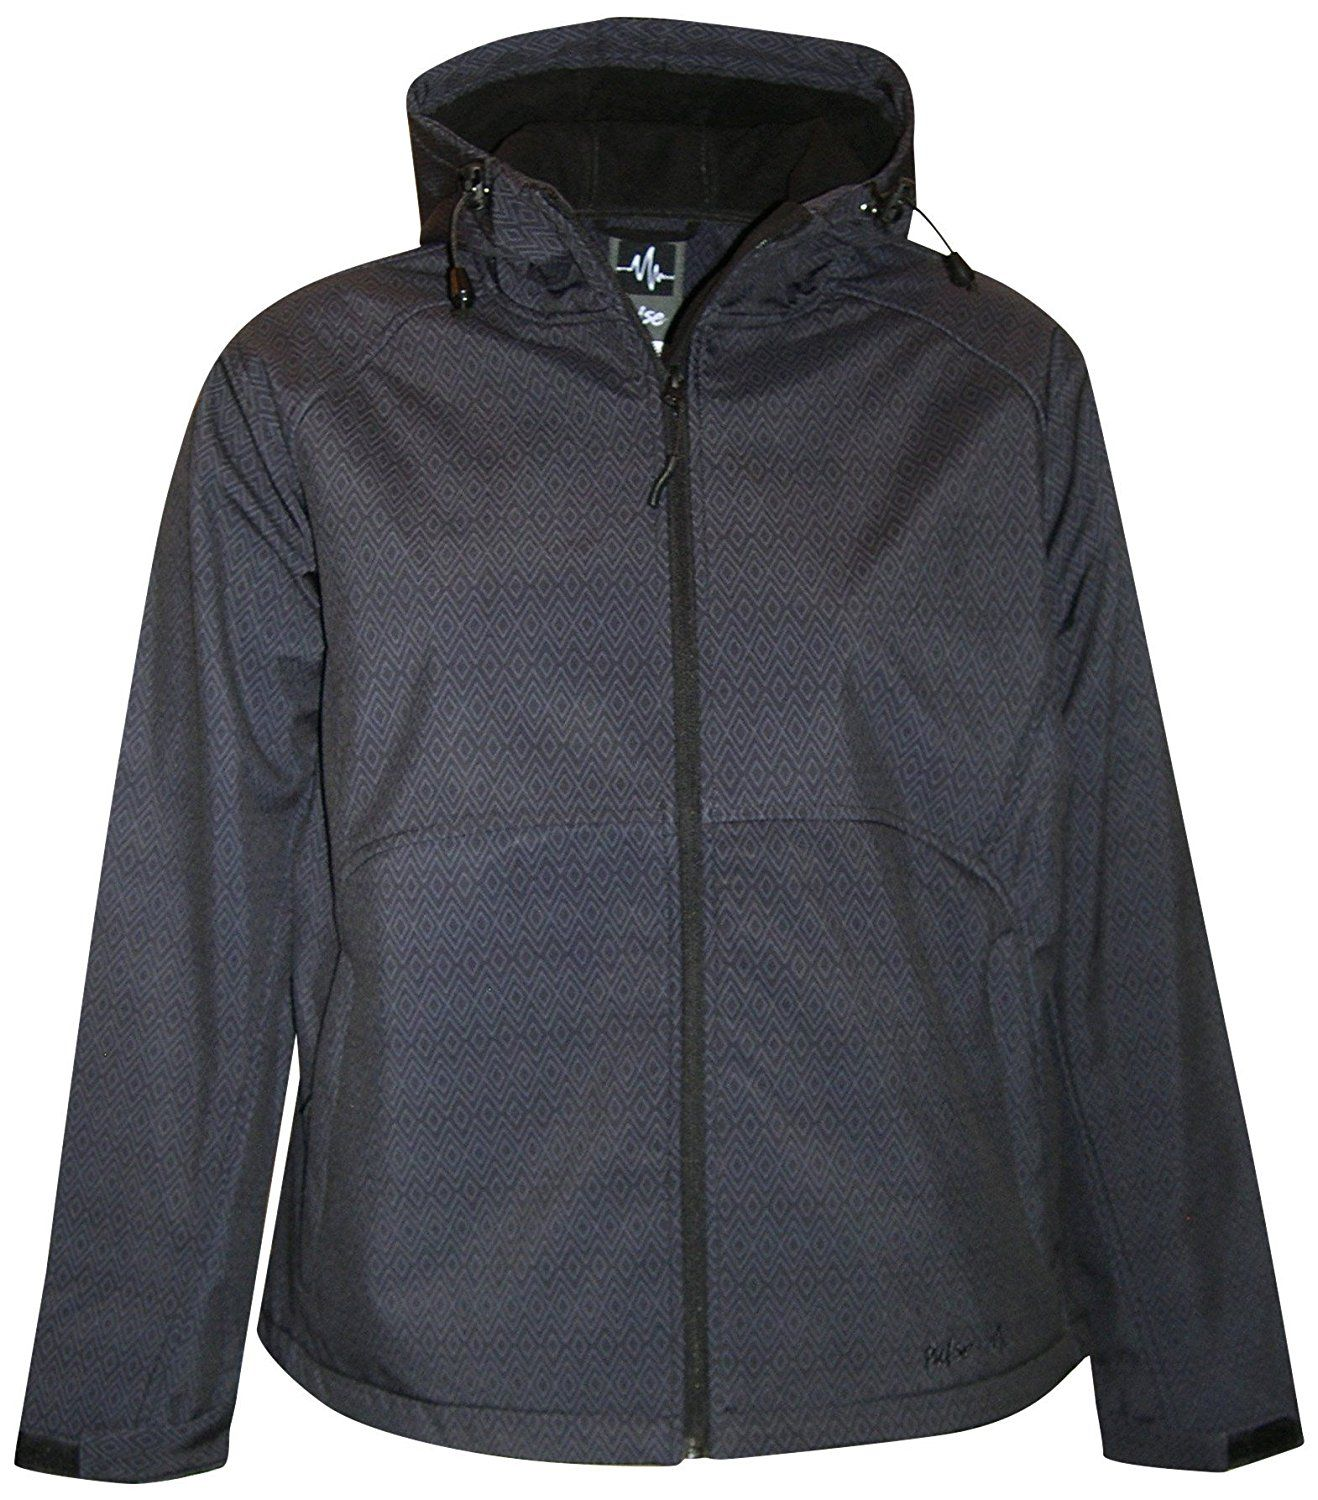 a5457ac5b0c61 Pulse Womens Extended Plus Size Soft Shell Hooded Jacket -- Special product  just for you